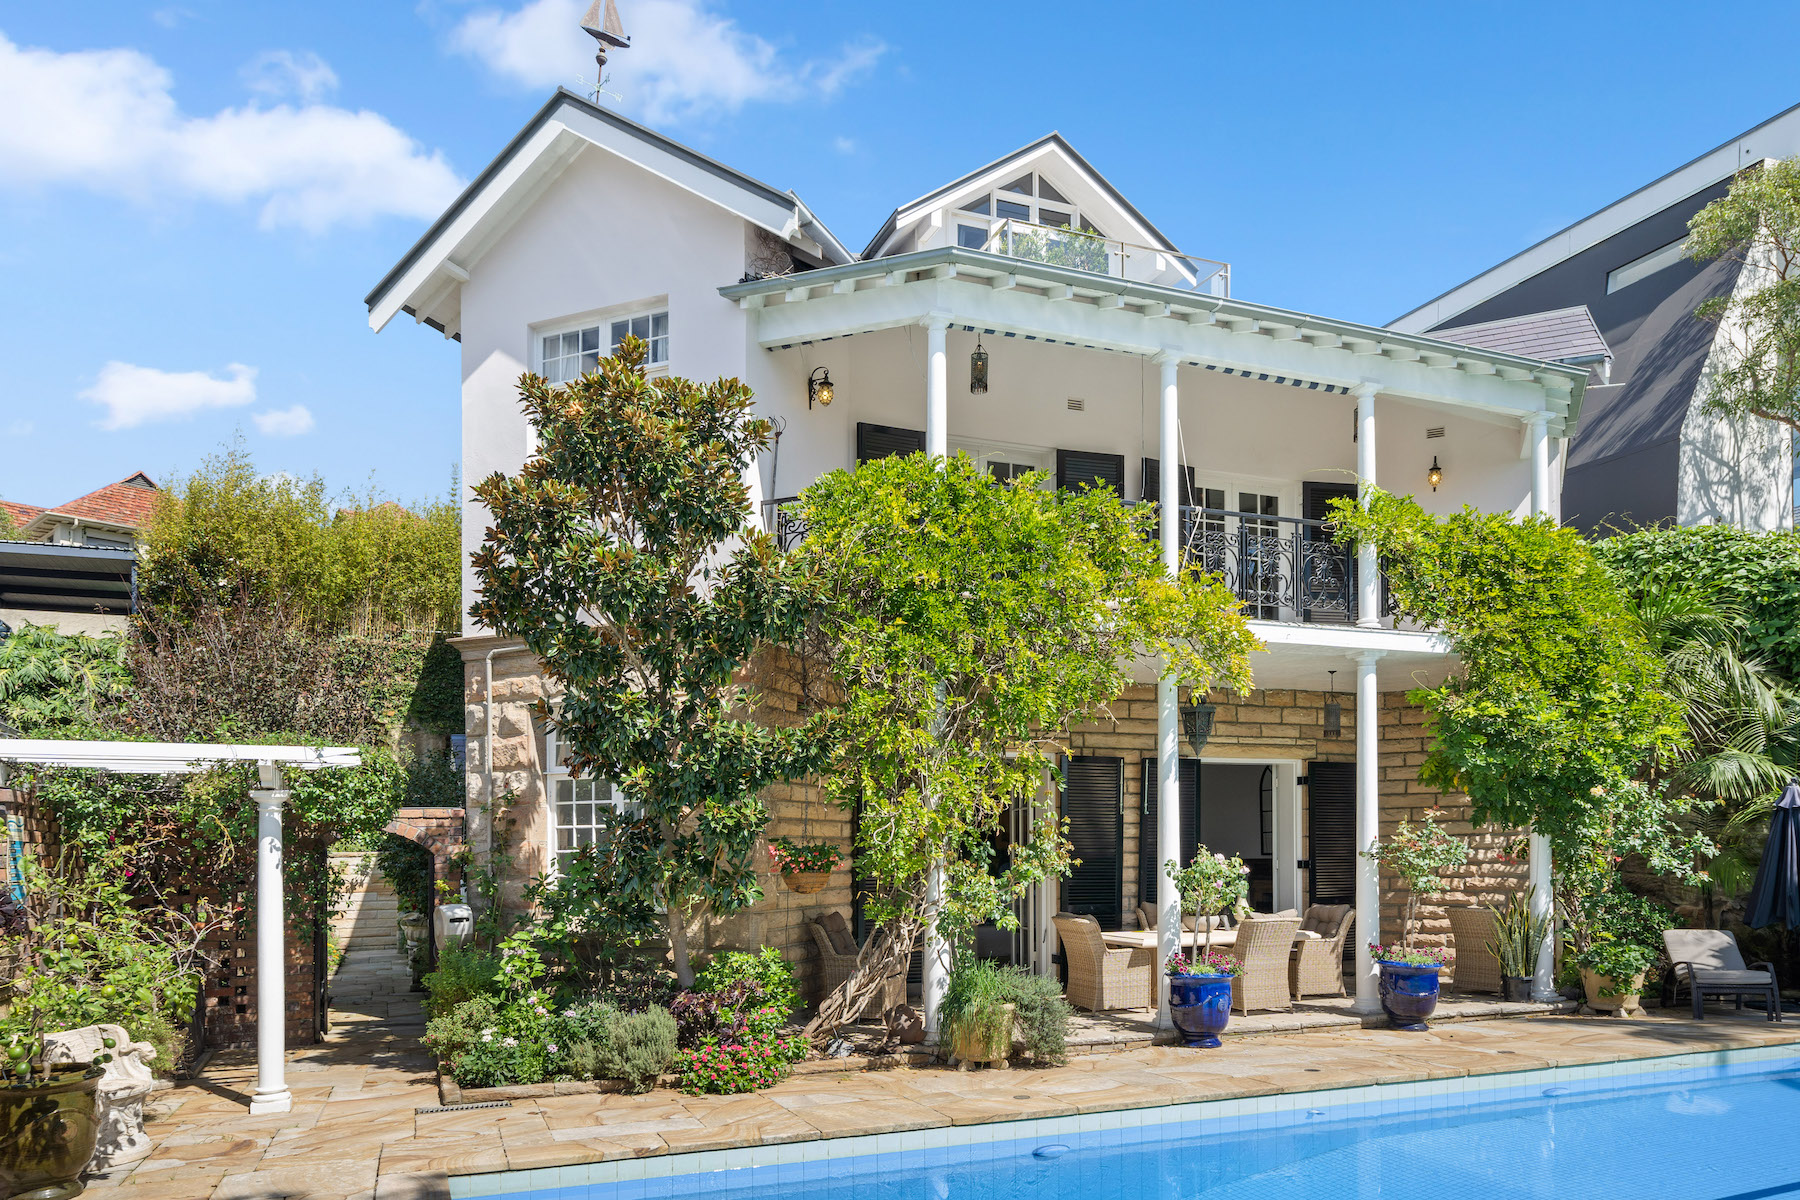 Other Residential for Sale at Capri, 4 Wyuna Road, Point Piper 4 Wyuna Road Sydney, New South Wales 2027 Australia